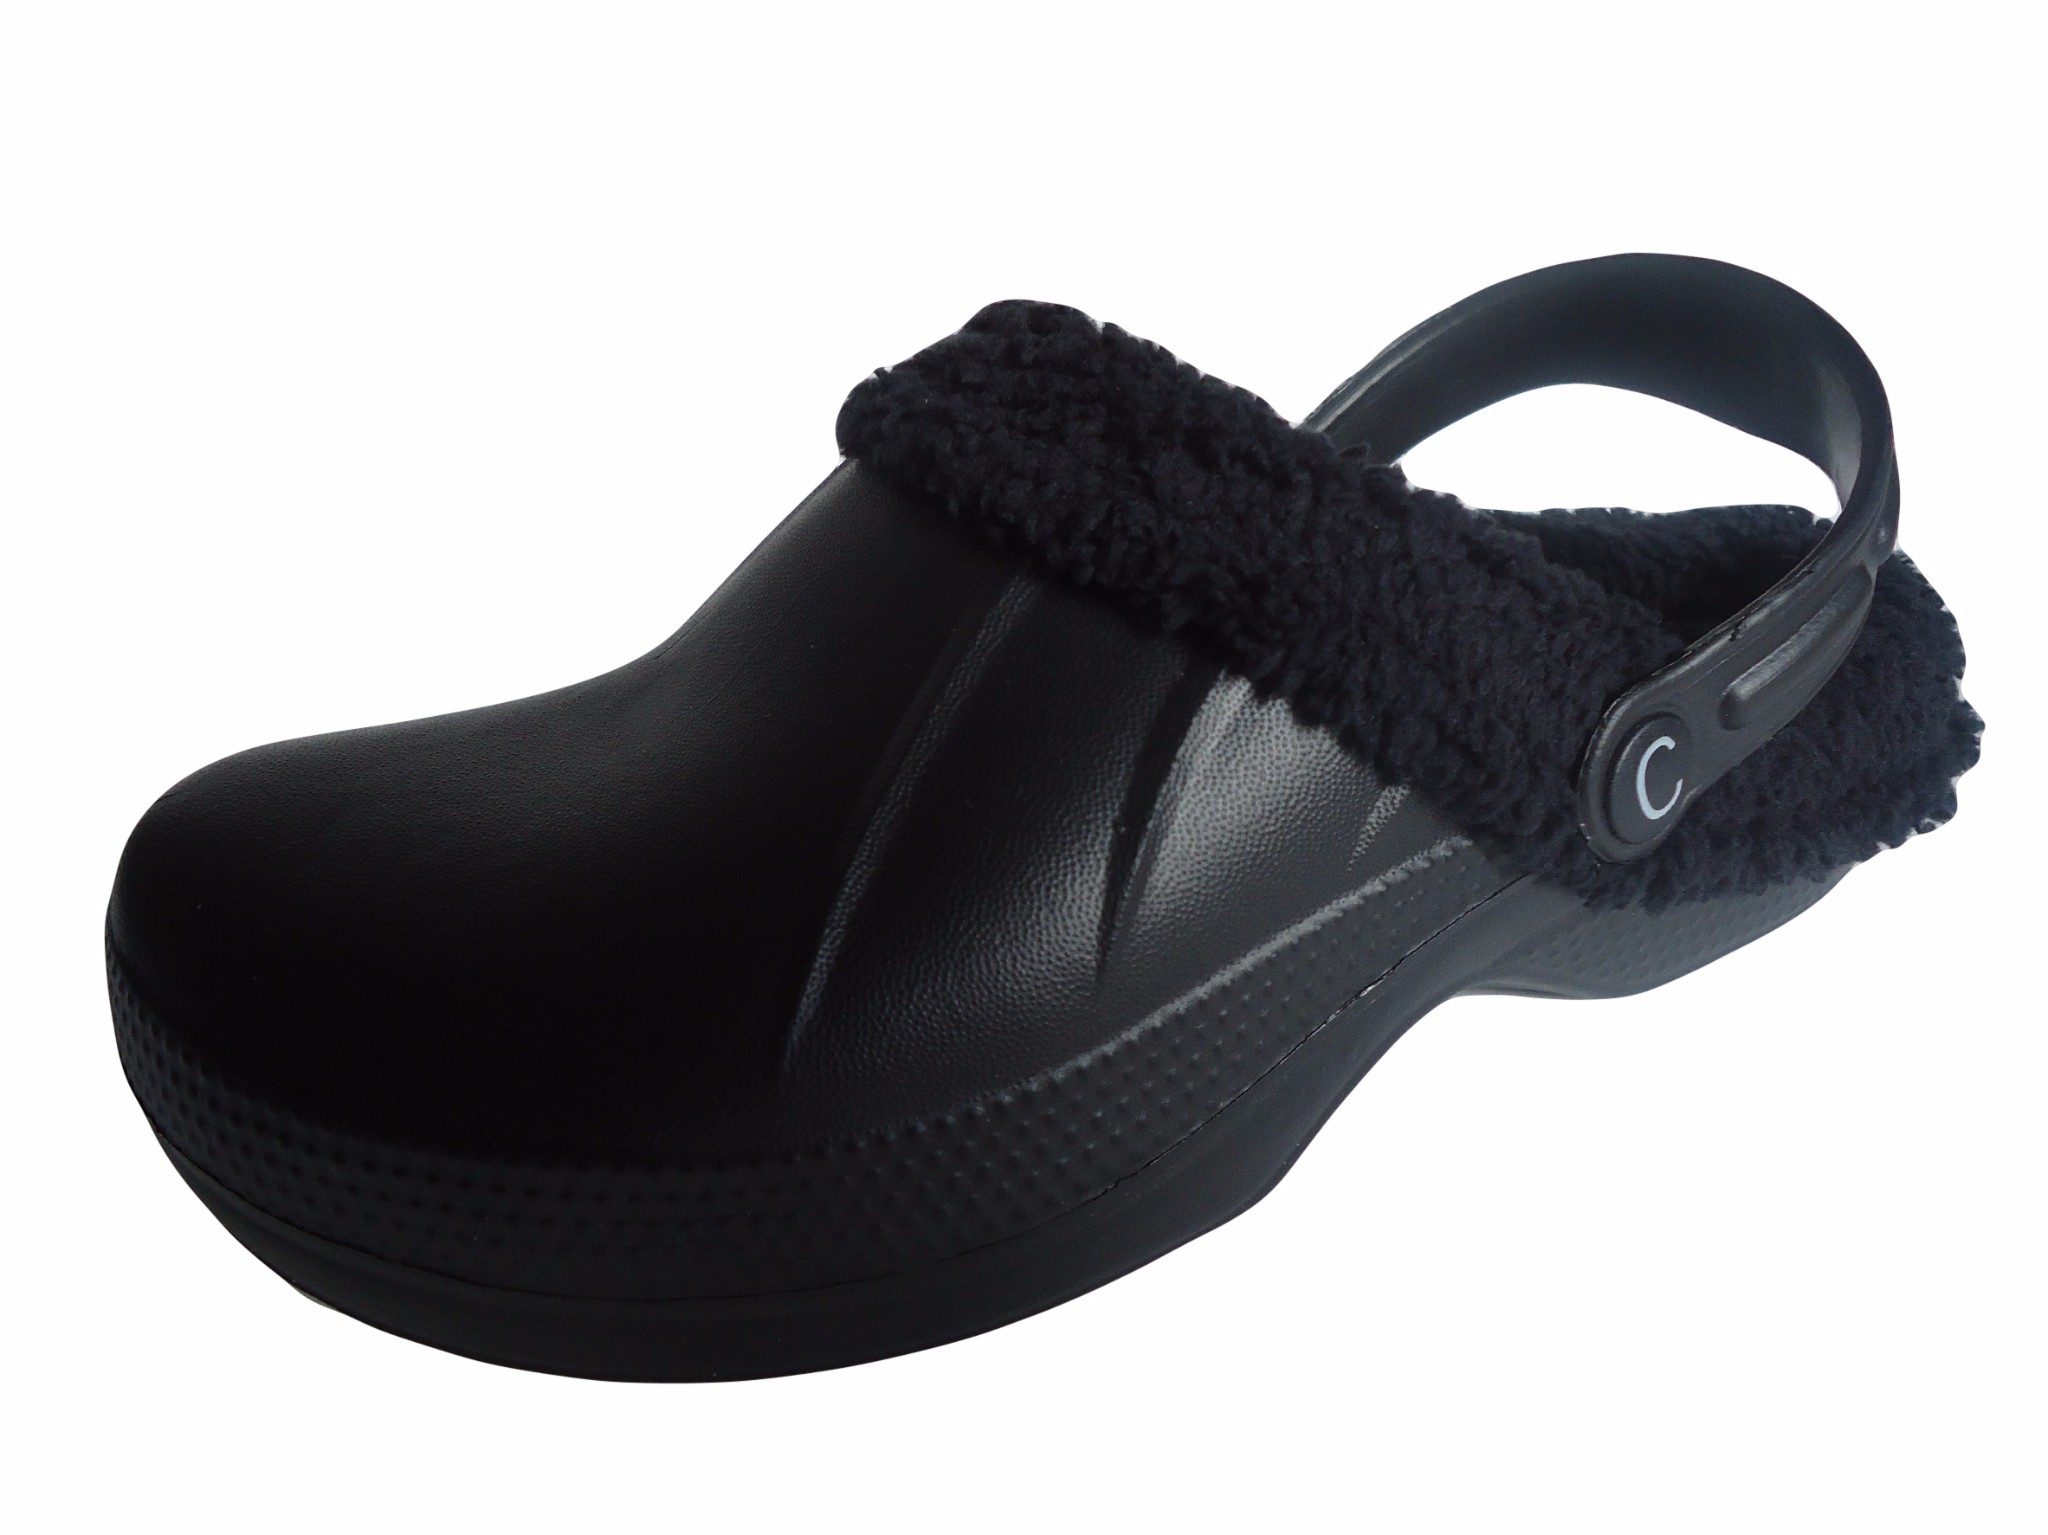 836a1a7c3 Fur lined clogs full clogs chefs kitchen garden shoes slippers jpg  2048x1535 Lined clog shoes